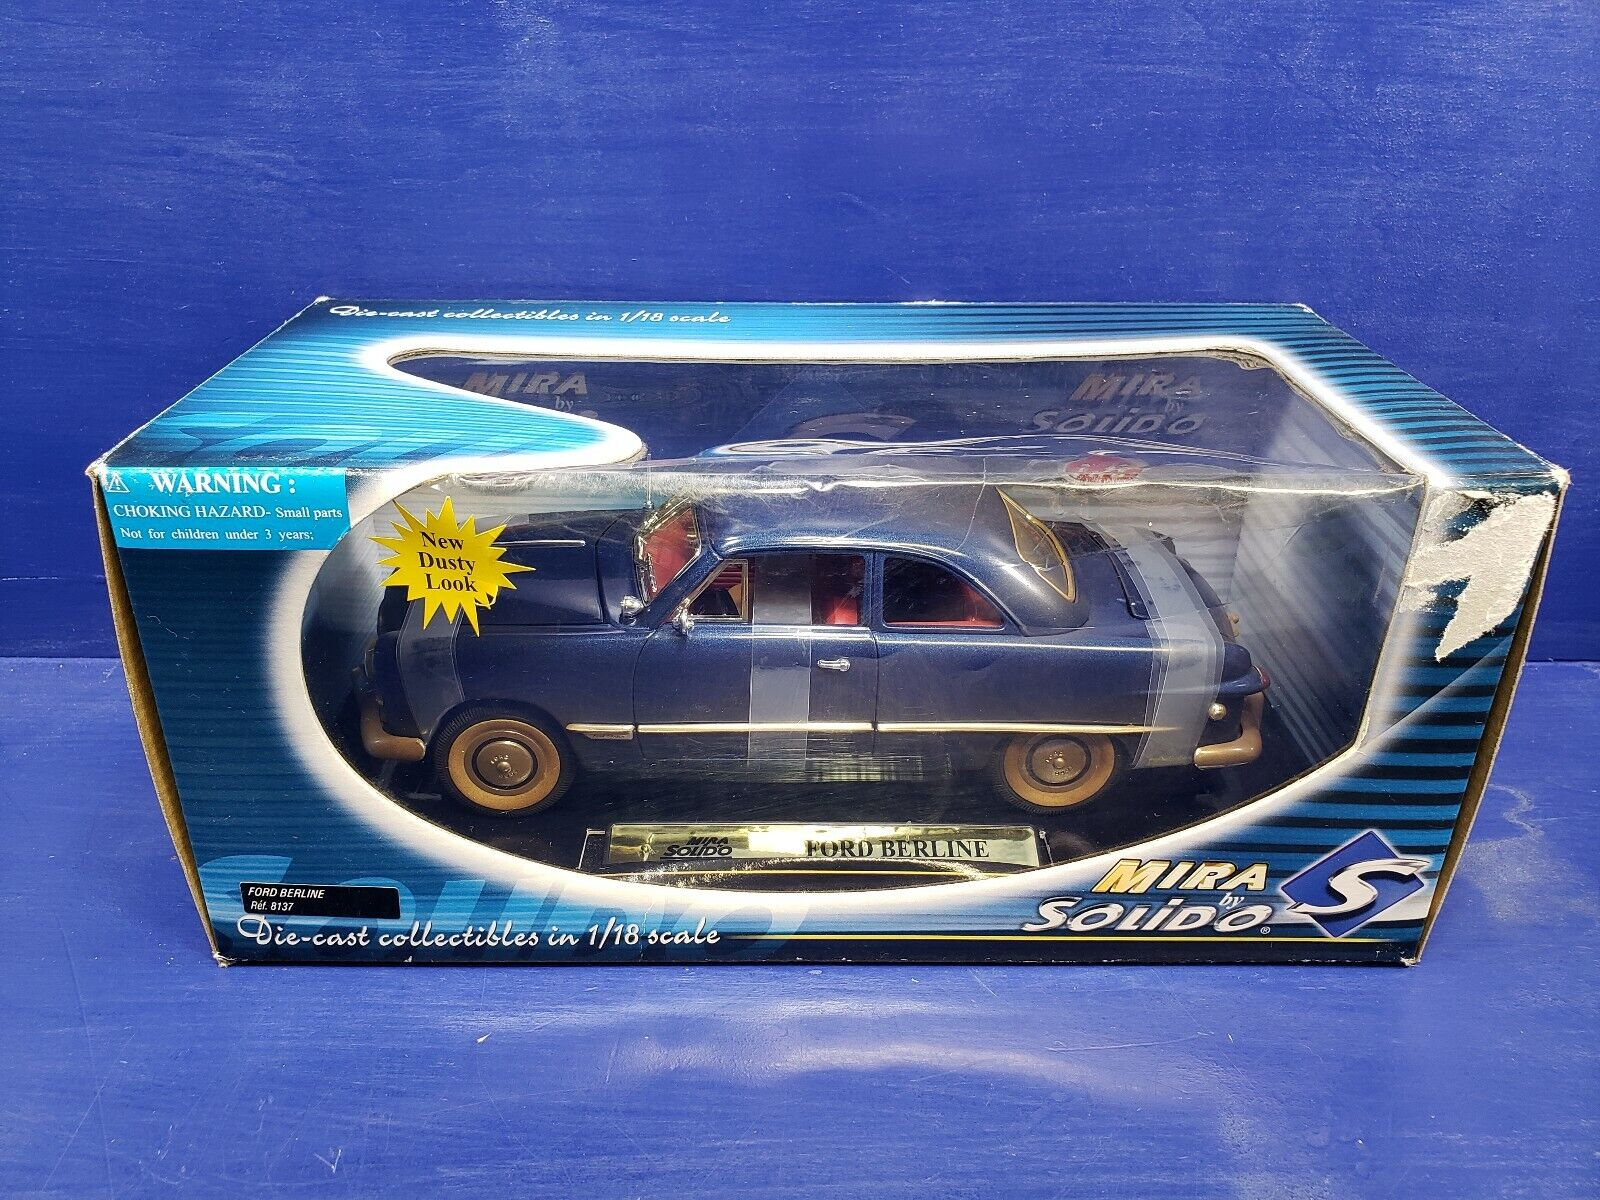 Ford Berline In A Dusty Blau Look 1 18 Scale Diecast From Mira By Solido dc310